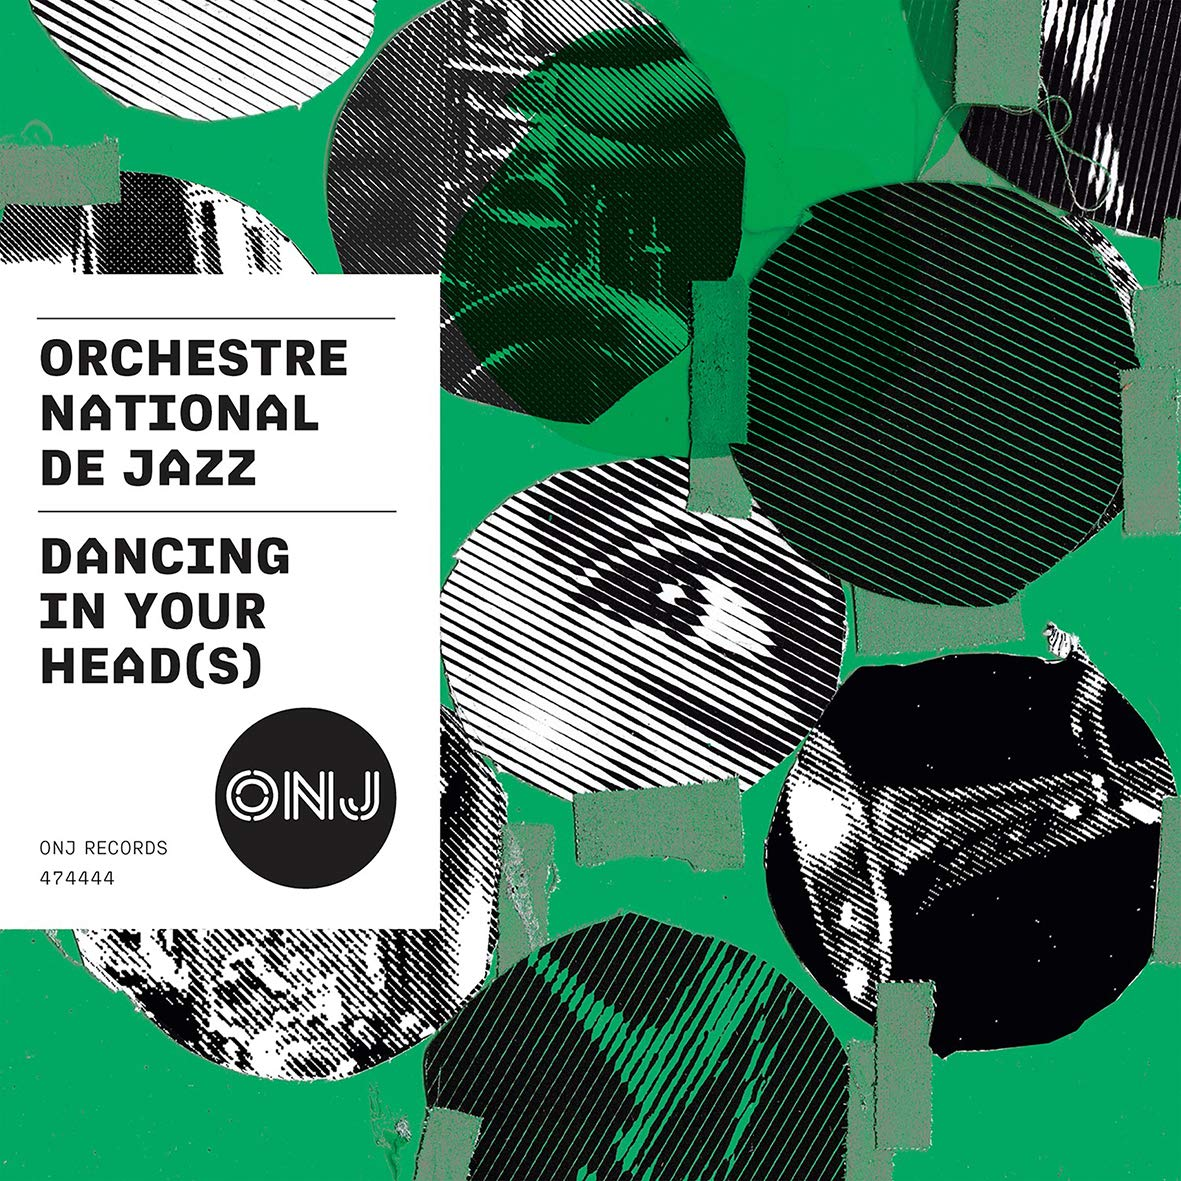 ORCHESTRE NATIONAL DE JAZZ - Dancing on Your Head(S) cover